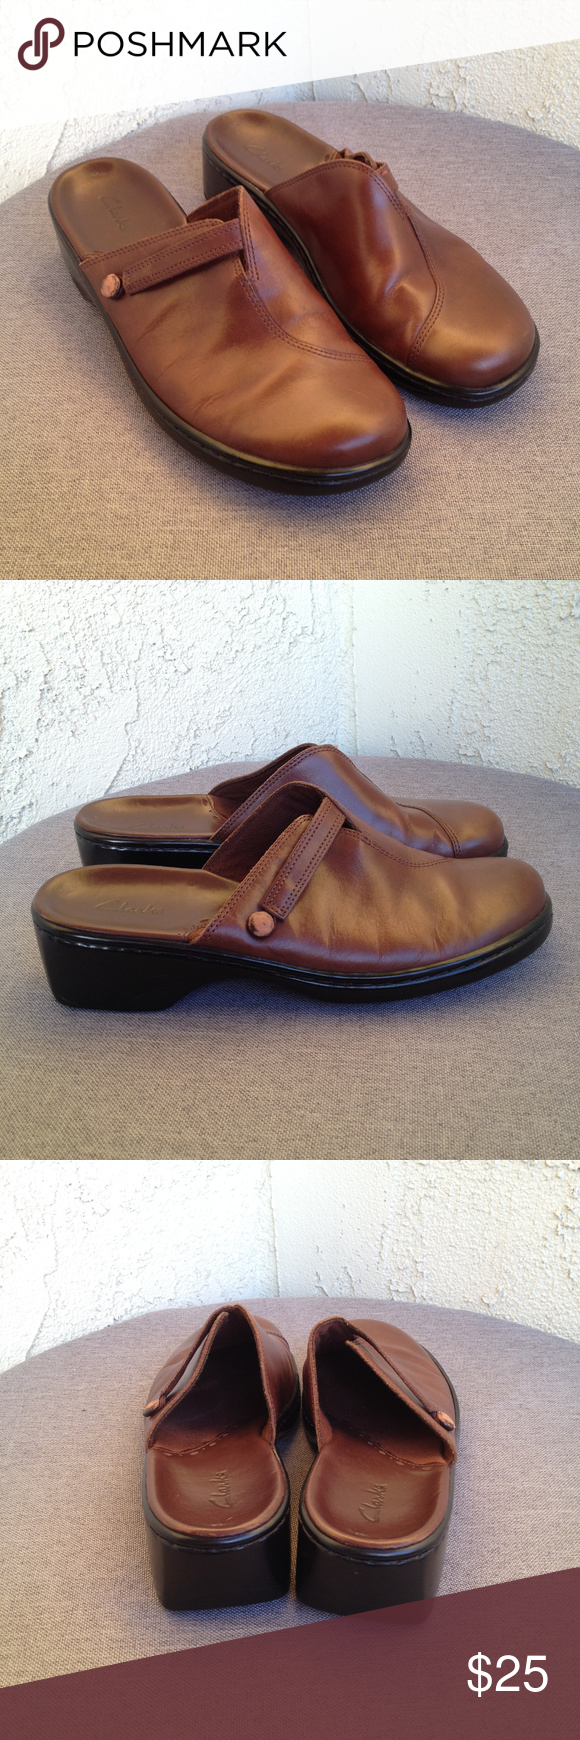 womens women heeqisml comforter shoes comfort mules gabor p and s clogs